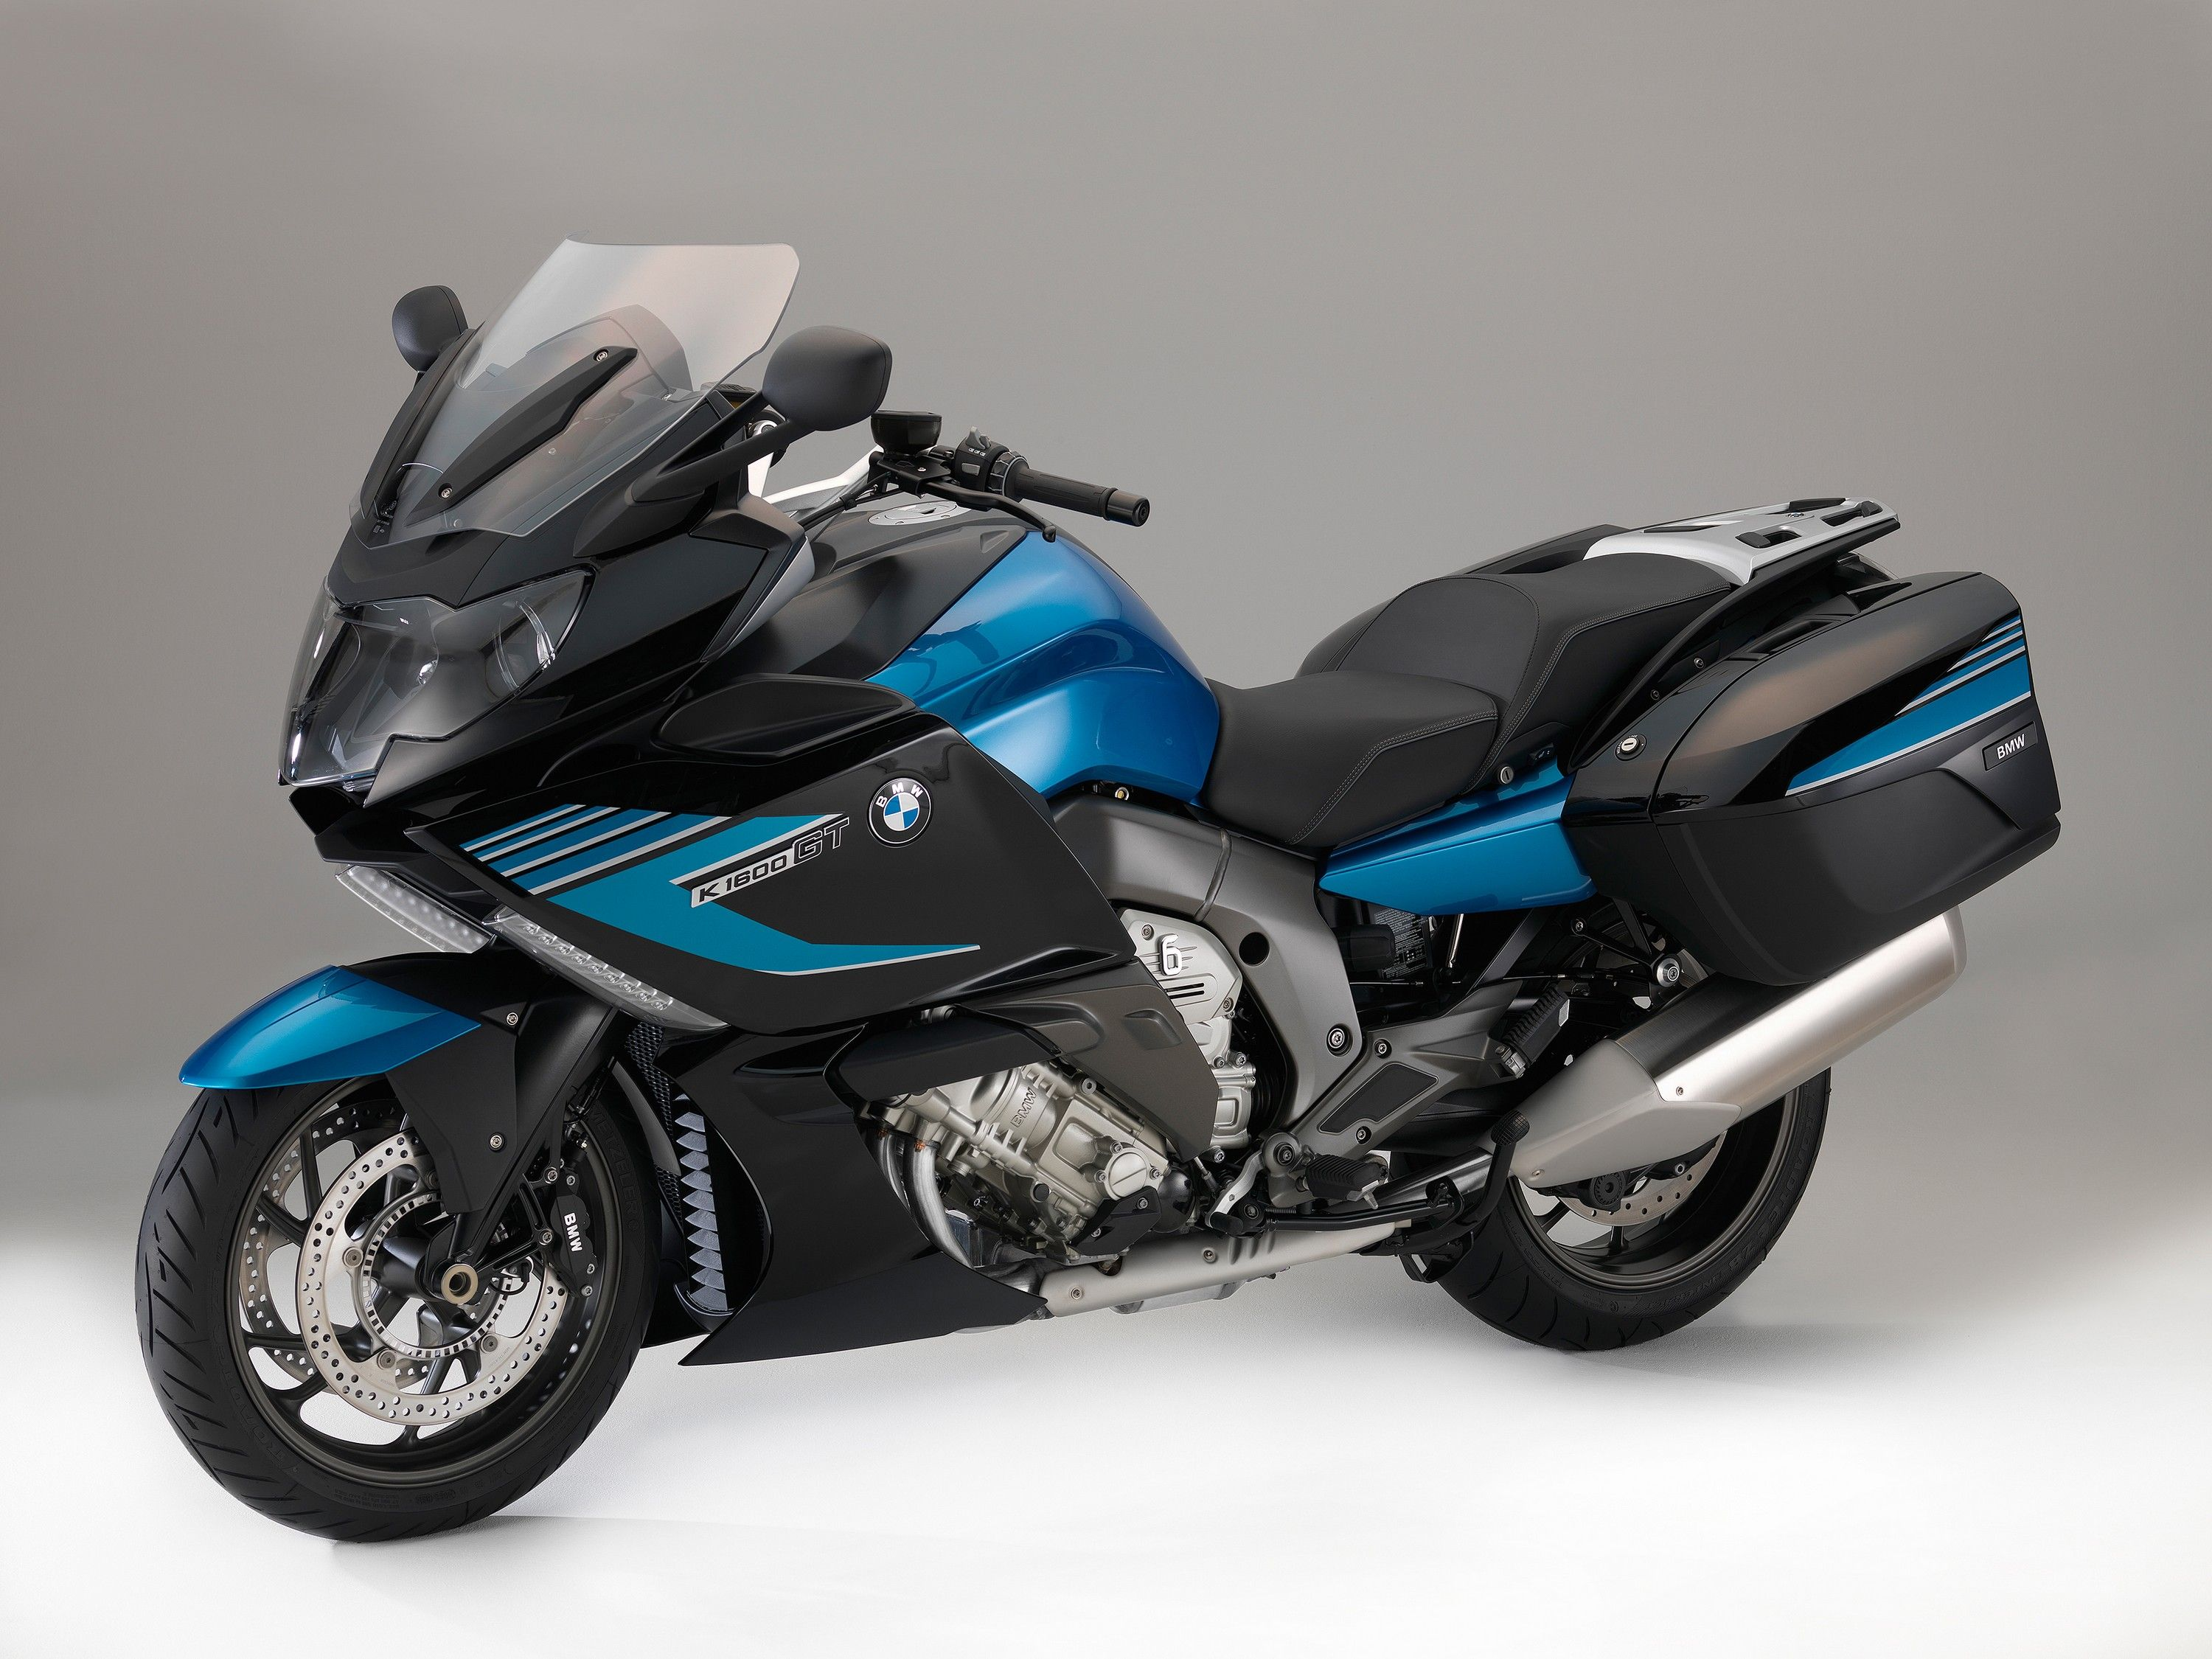 c9a4c4fd336432c43a37fd44403b4de4 Exciting Bmw R 1200 Cl forum Cars Trend